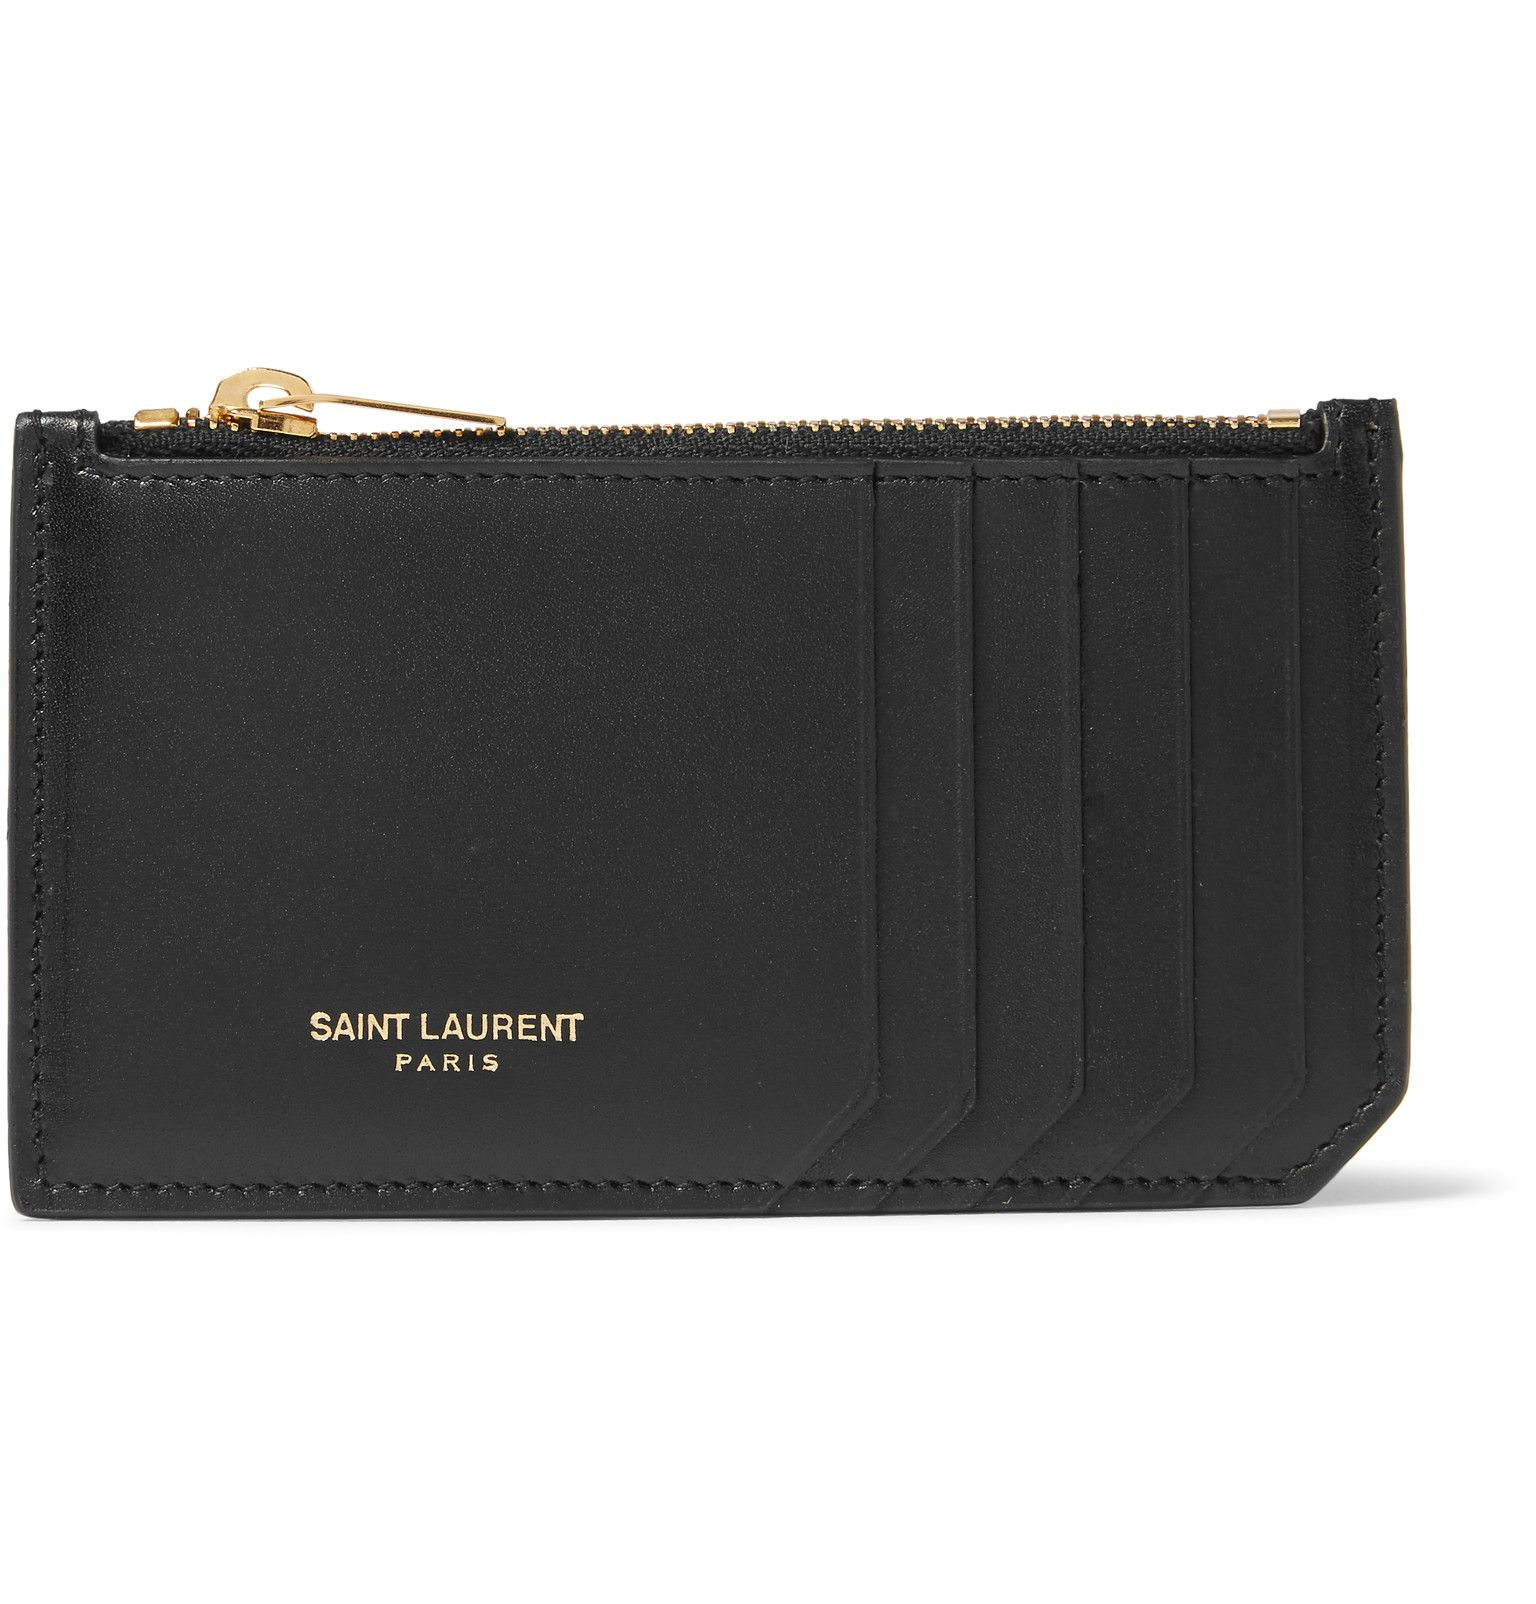 Keep your notes, change and payment essentials neatly stowed with this smart cardholder from Saint Laurent. Made from smooth leather, it's kitted with several slots and a handy zipped compartment for odds and ends.